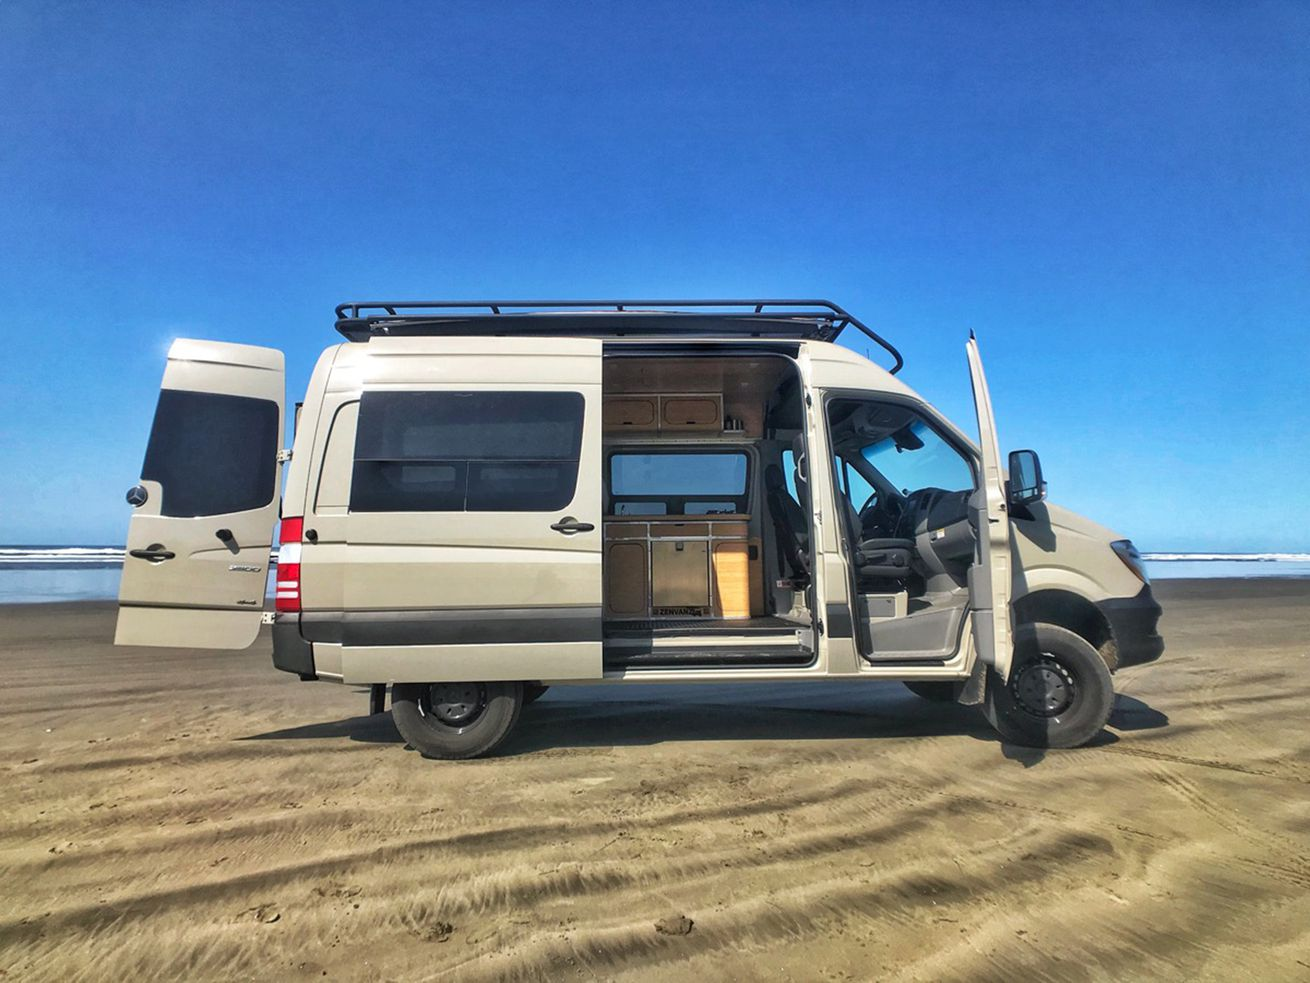 Elegant bamboo camper kits get you van life for $18K